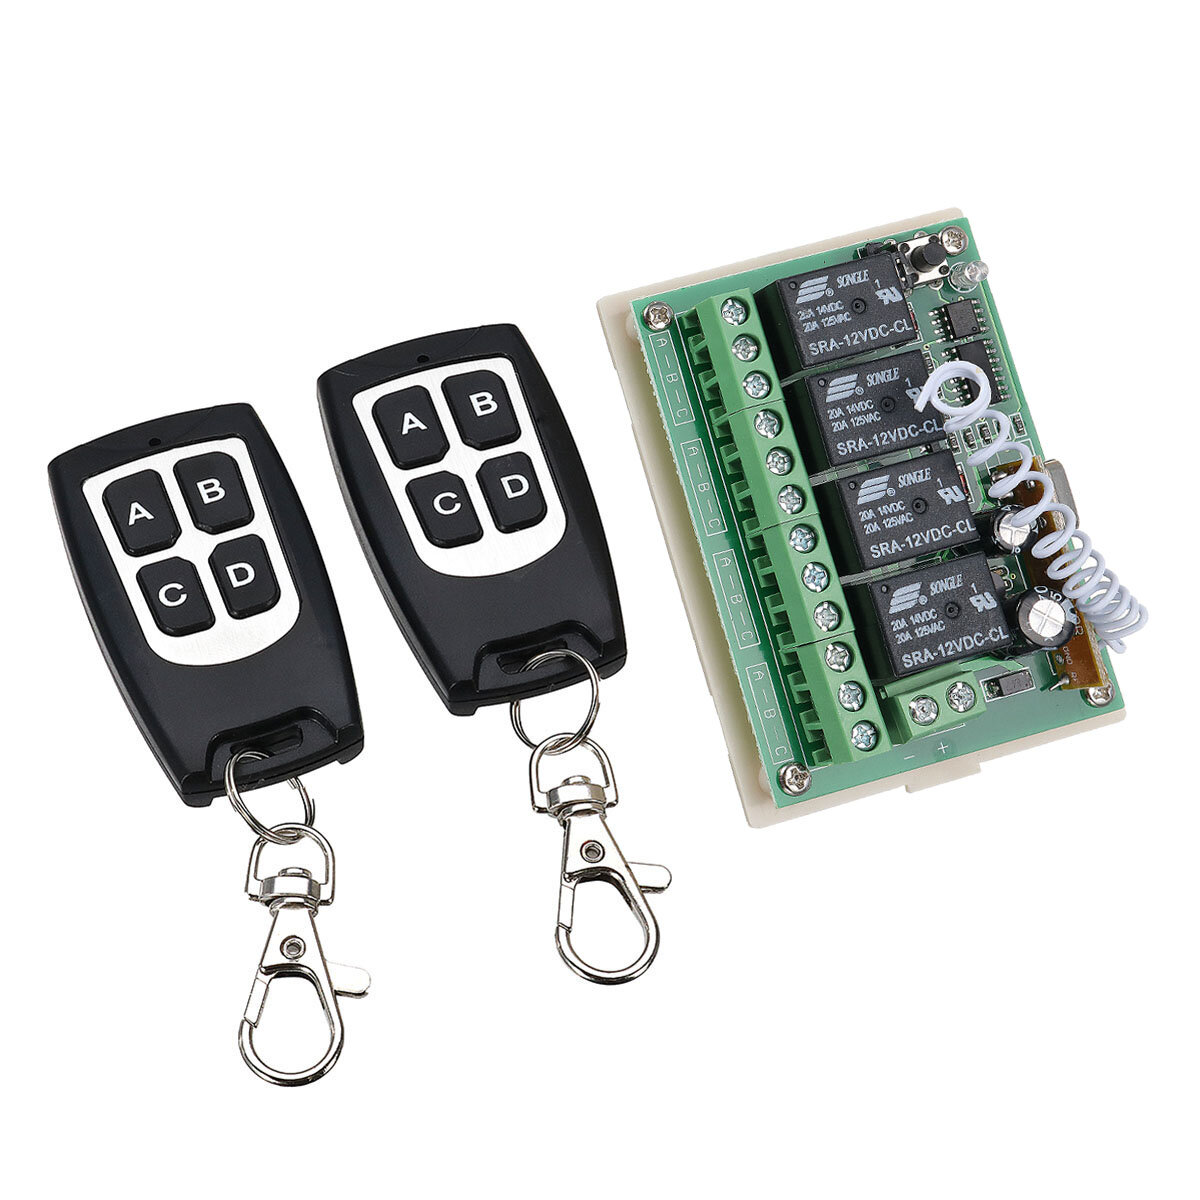 Geekcreit 12v 4ch Channel 433mhz Wireless Remote Control Switch Protect Against Shorts In Circuit Can Usually Be With 2 Transmitter